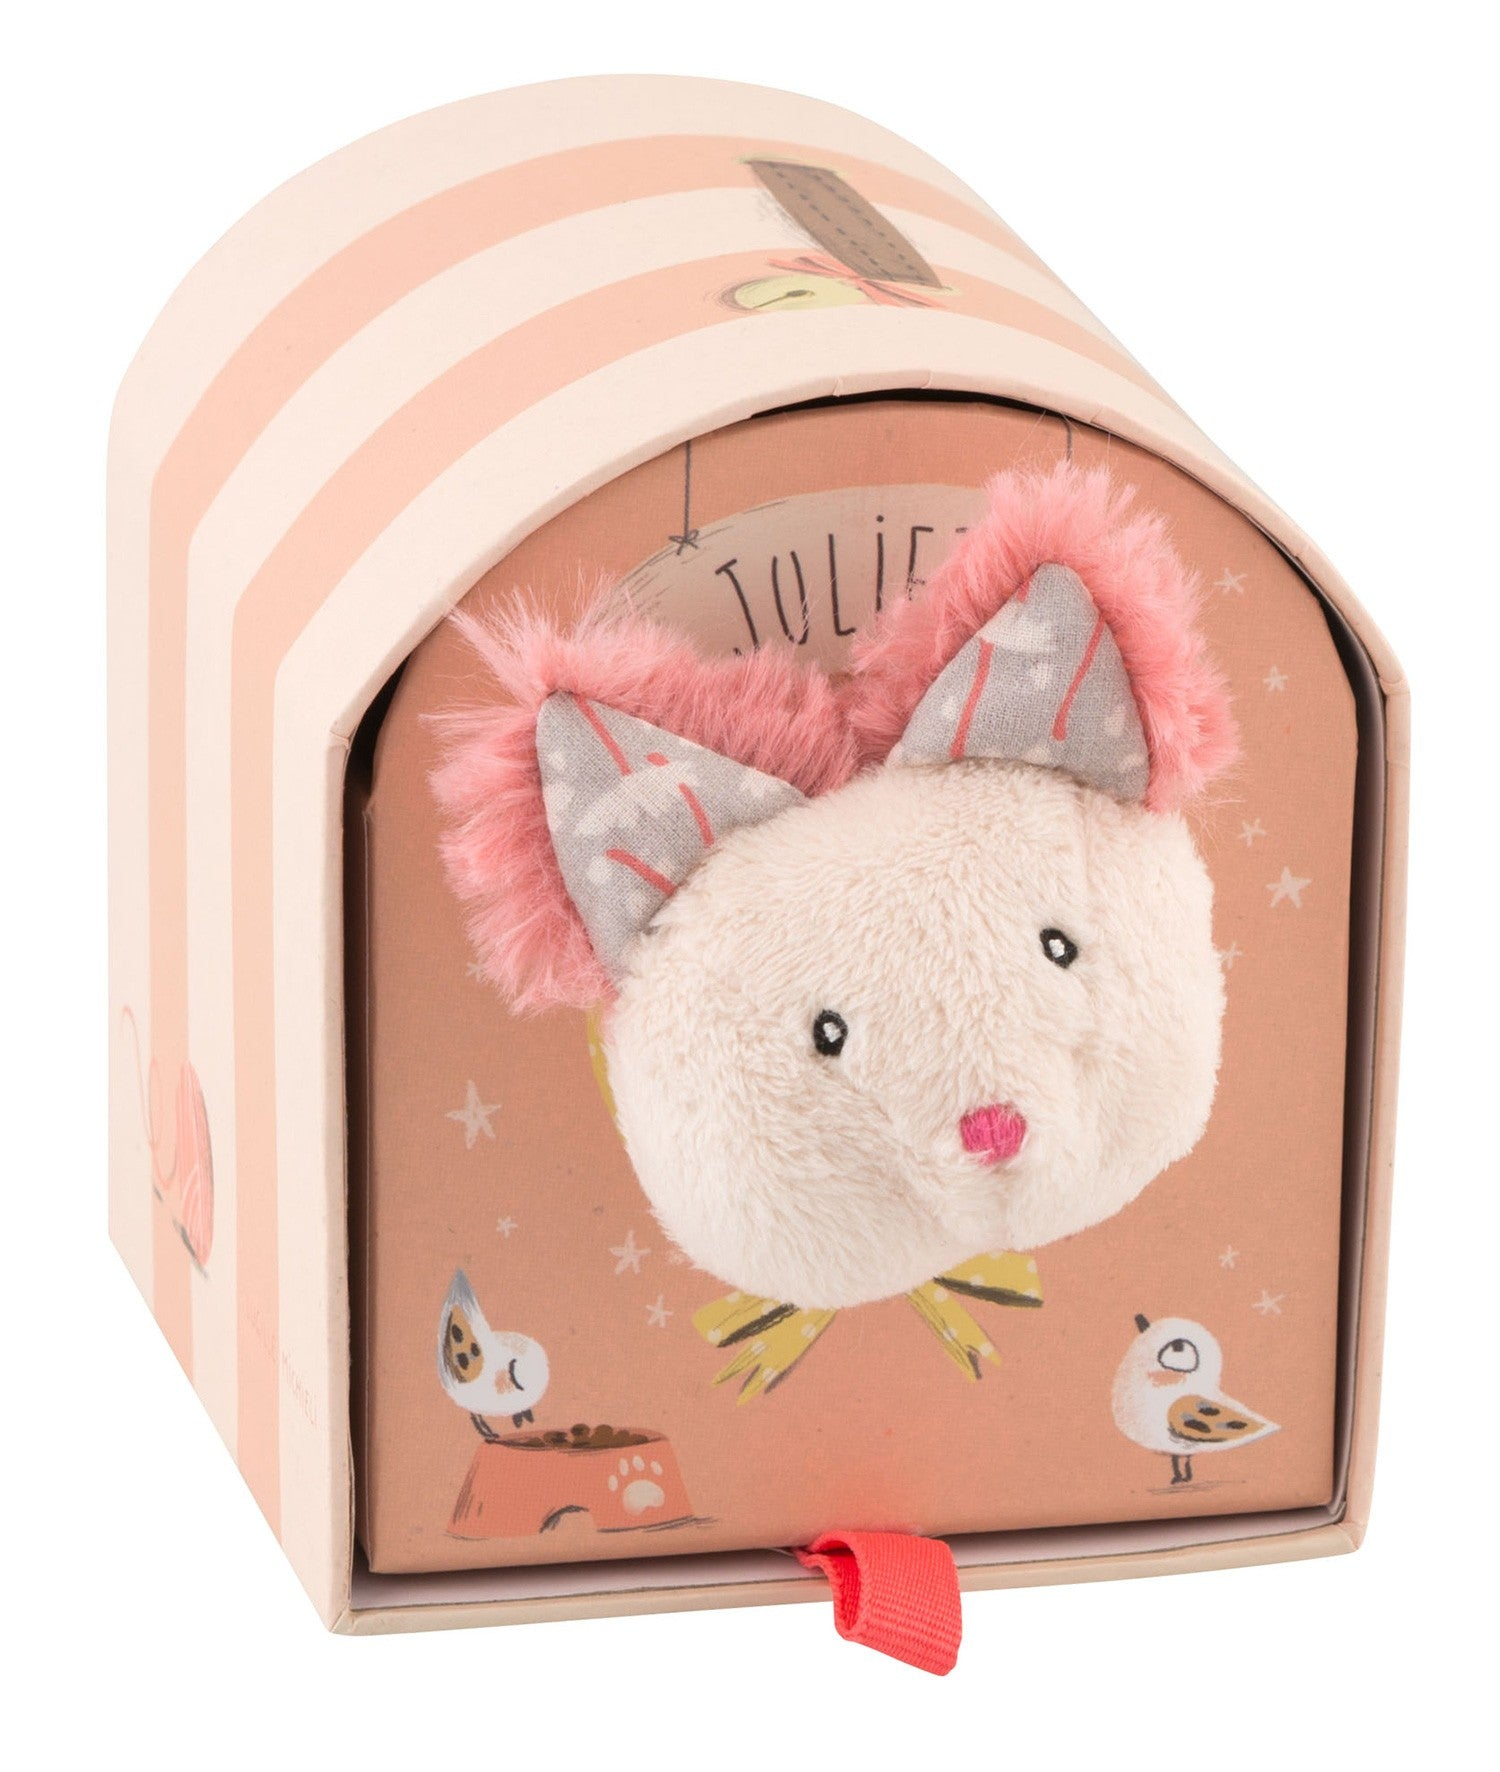 Moulin Roty Juliette la chatte